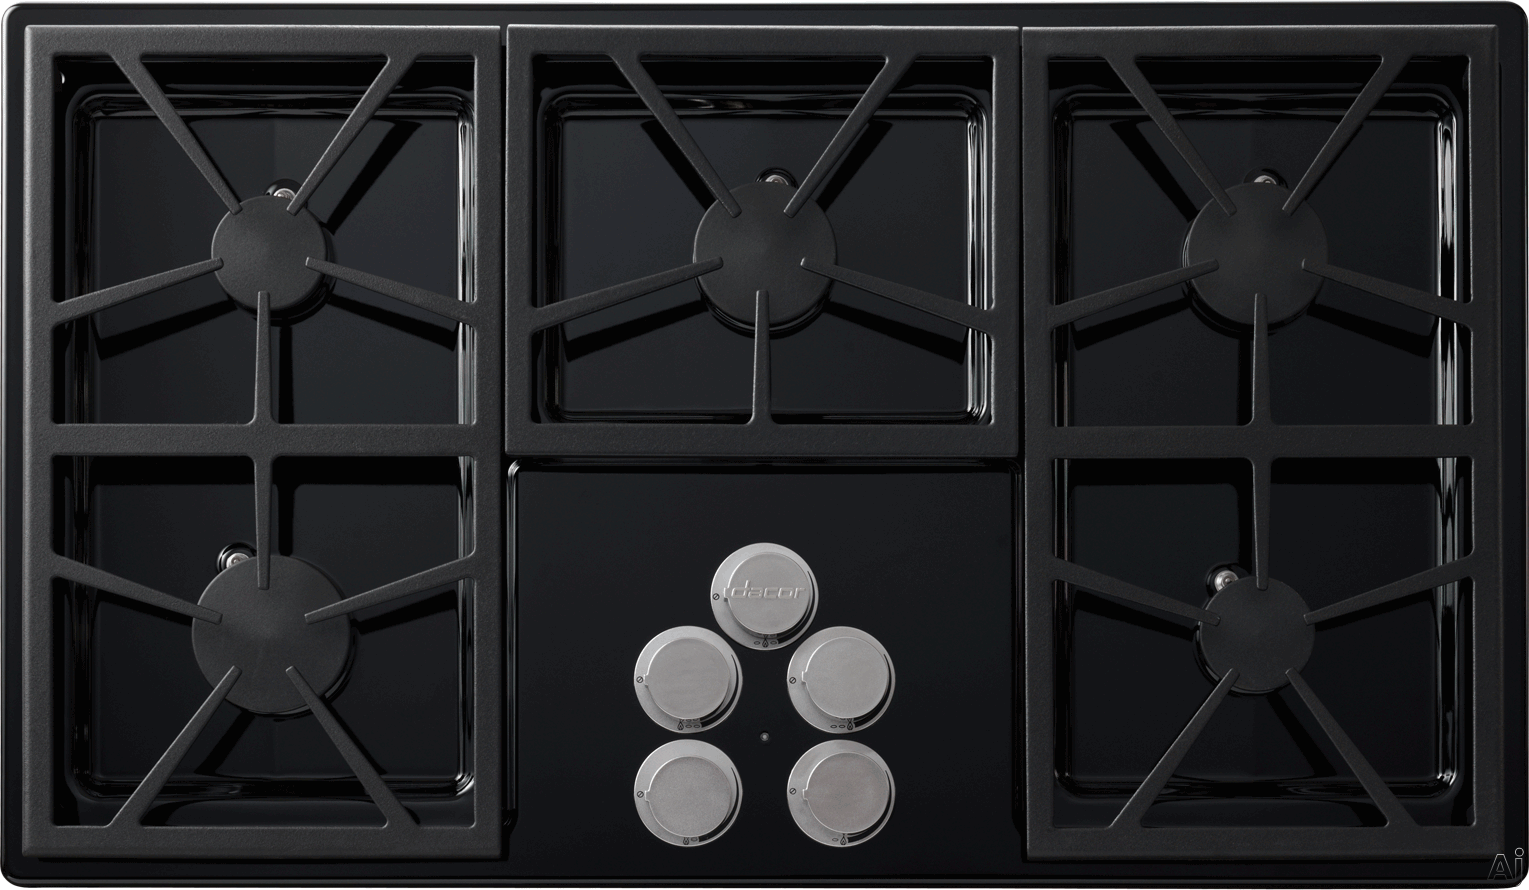 Dacor Distinctive DTCT365GBNGH 36 Inch Gas Cooktop with 5 Sealed Burners, 56,000 BTUs, Perma-Flame Technology, SmartFlame Technology, Continuous Grates, Spill Basin with PermaClean Finish and Downdraft Compatible: Black, Natural Gas, High-Altitude